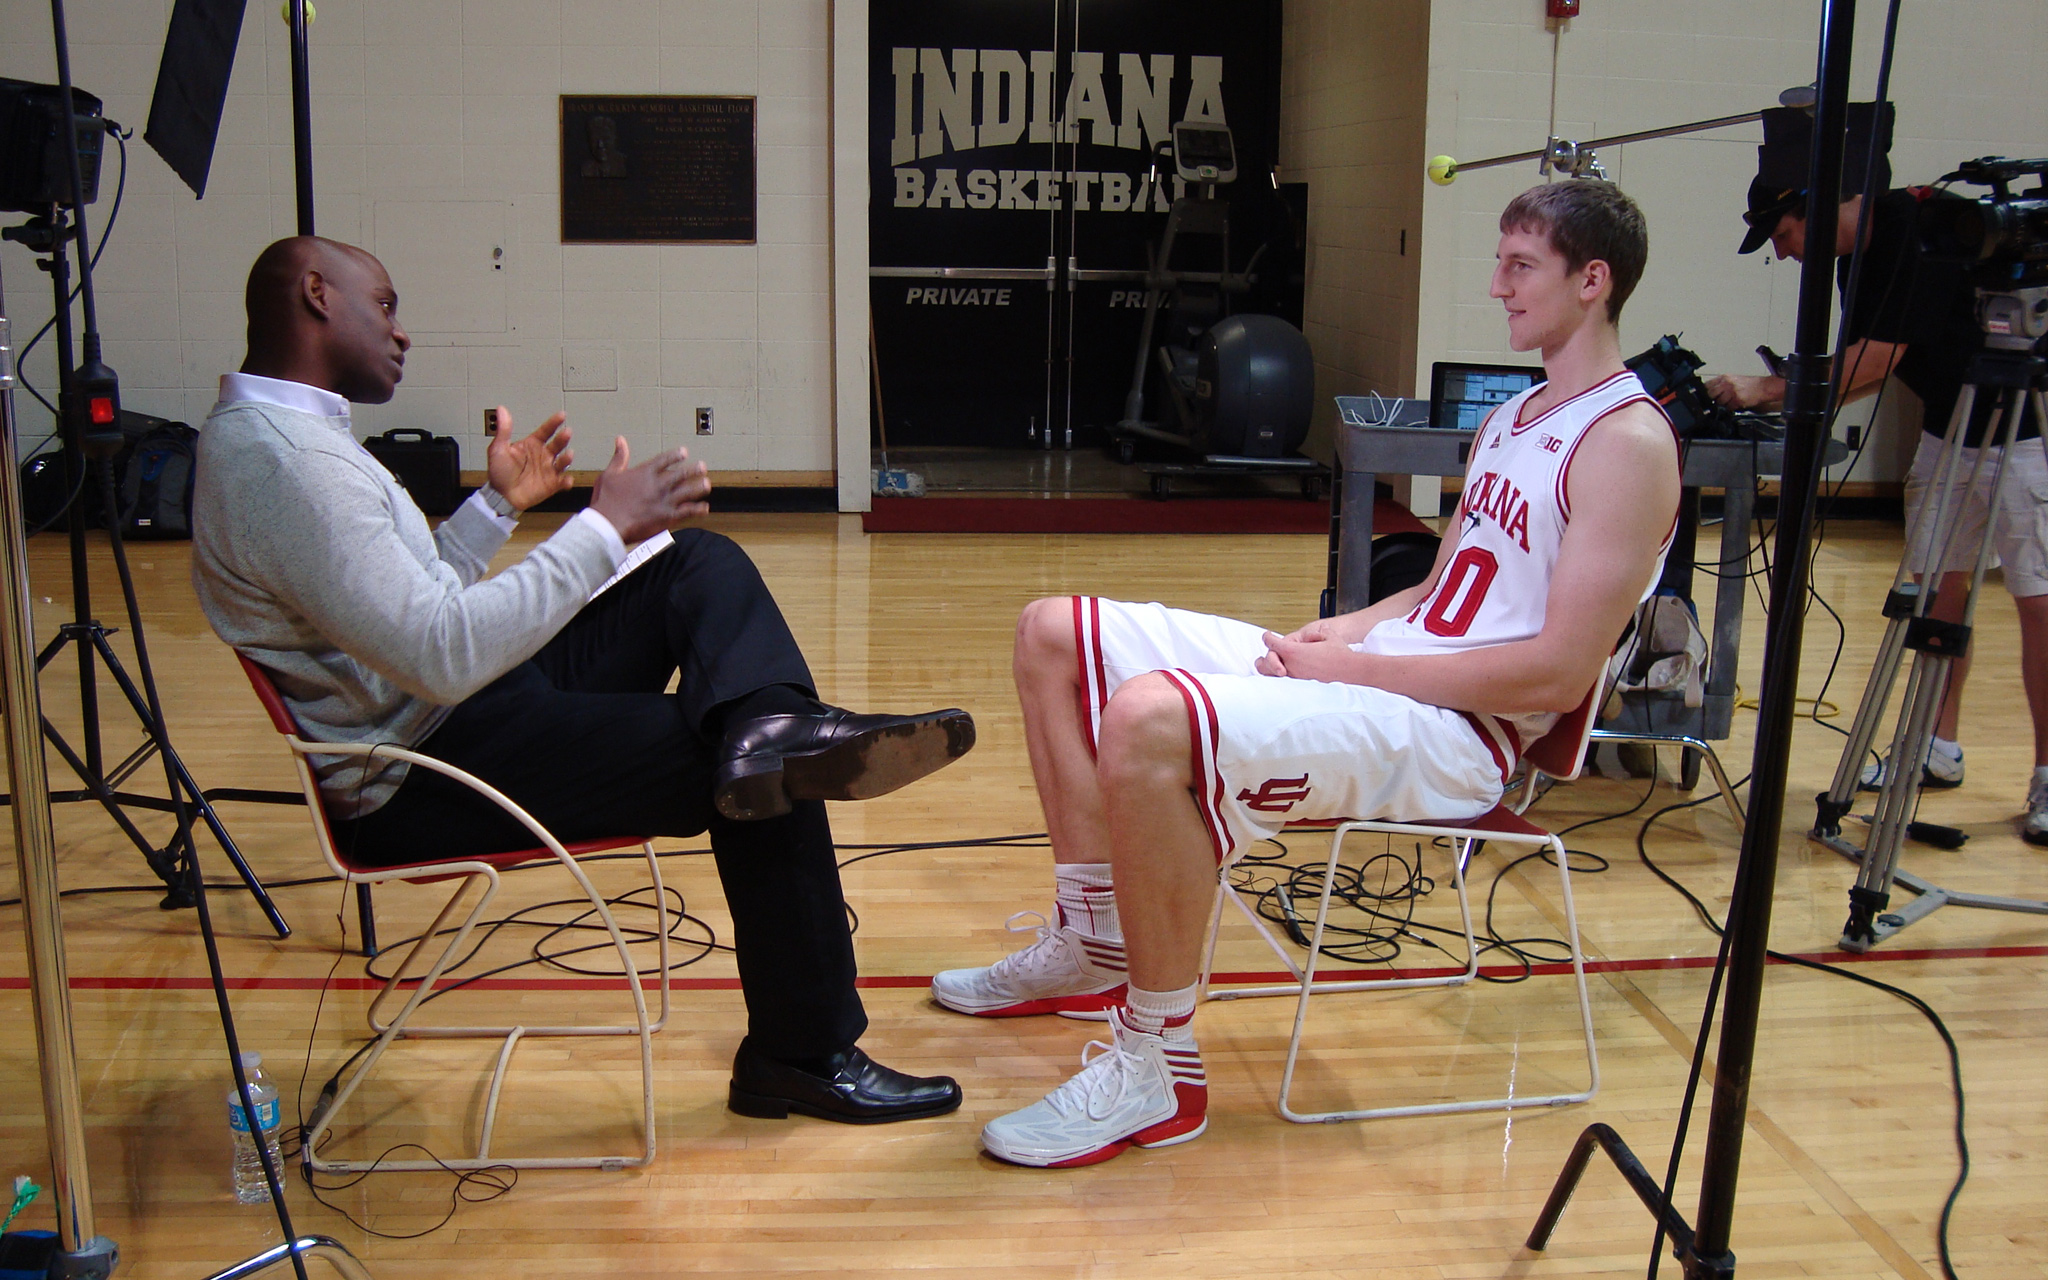 Cody Zeller: Behind the Scenes